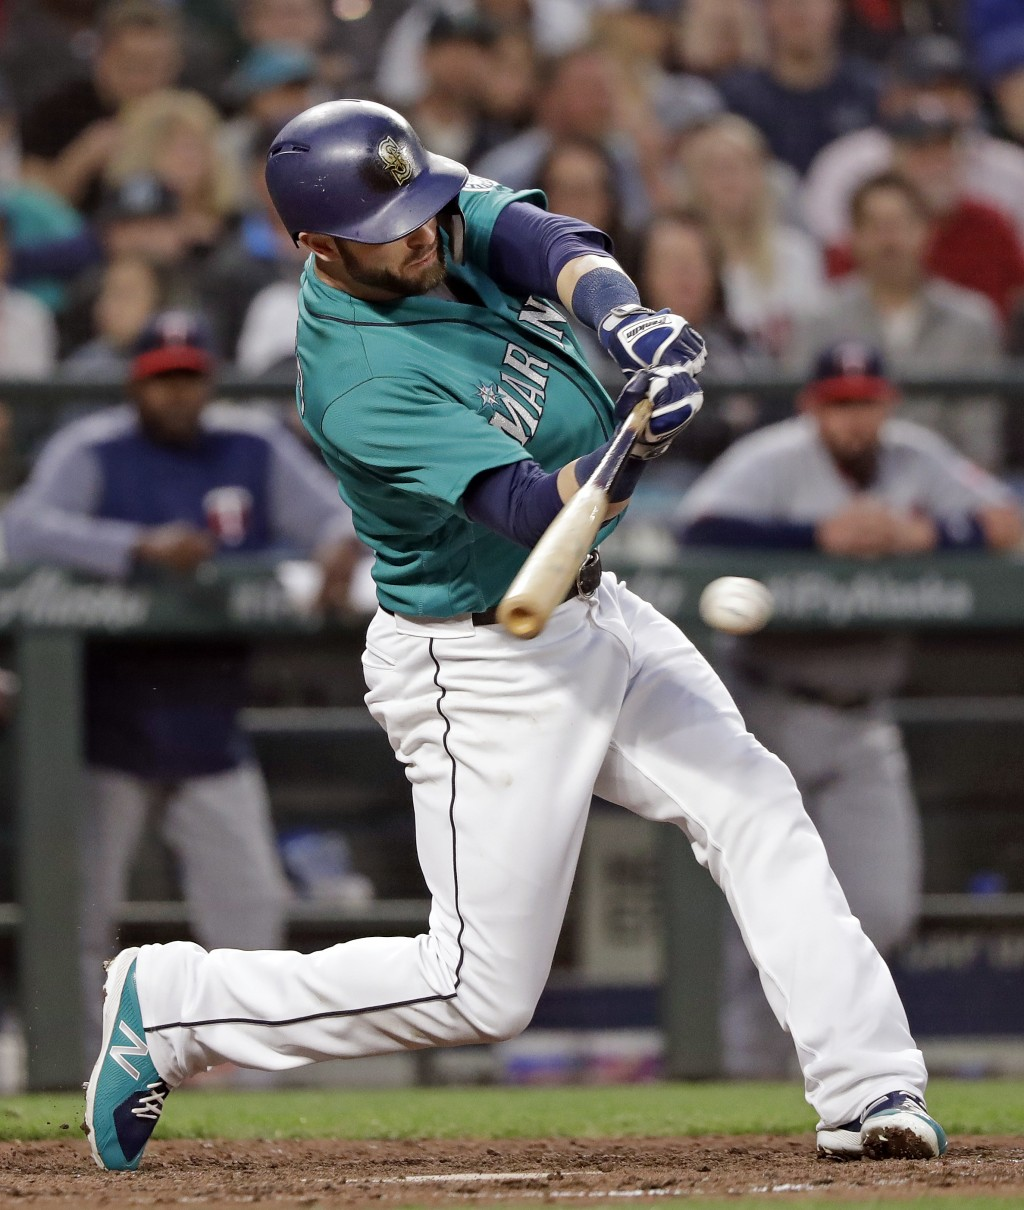 Seattle Mariners' Mitch Haniger singles in a run against the Minnesota Twins during the sixth inning of a baseball game Friday, May 25, 2018, in Seatt...